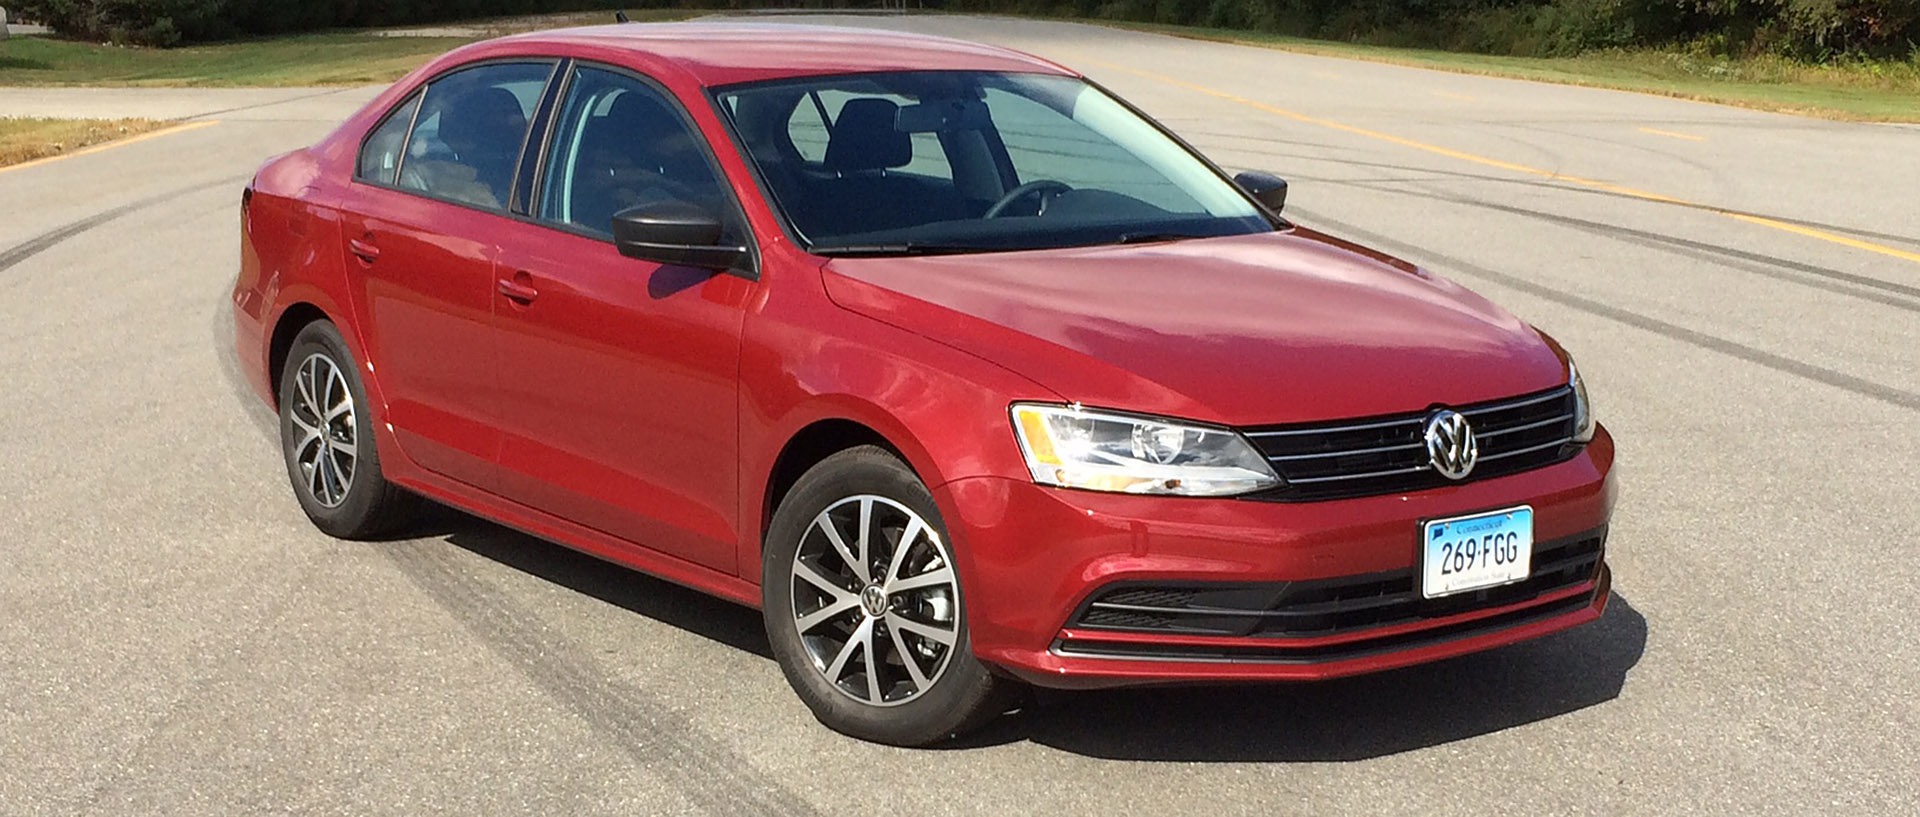 2016 volkswagen jetta 1 4t review consumer reports. Black Bedroom Furniture Sets. Home Design Ideas